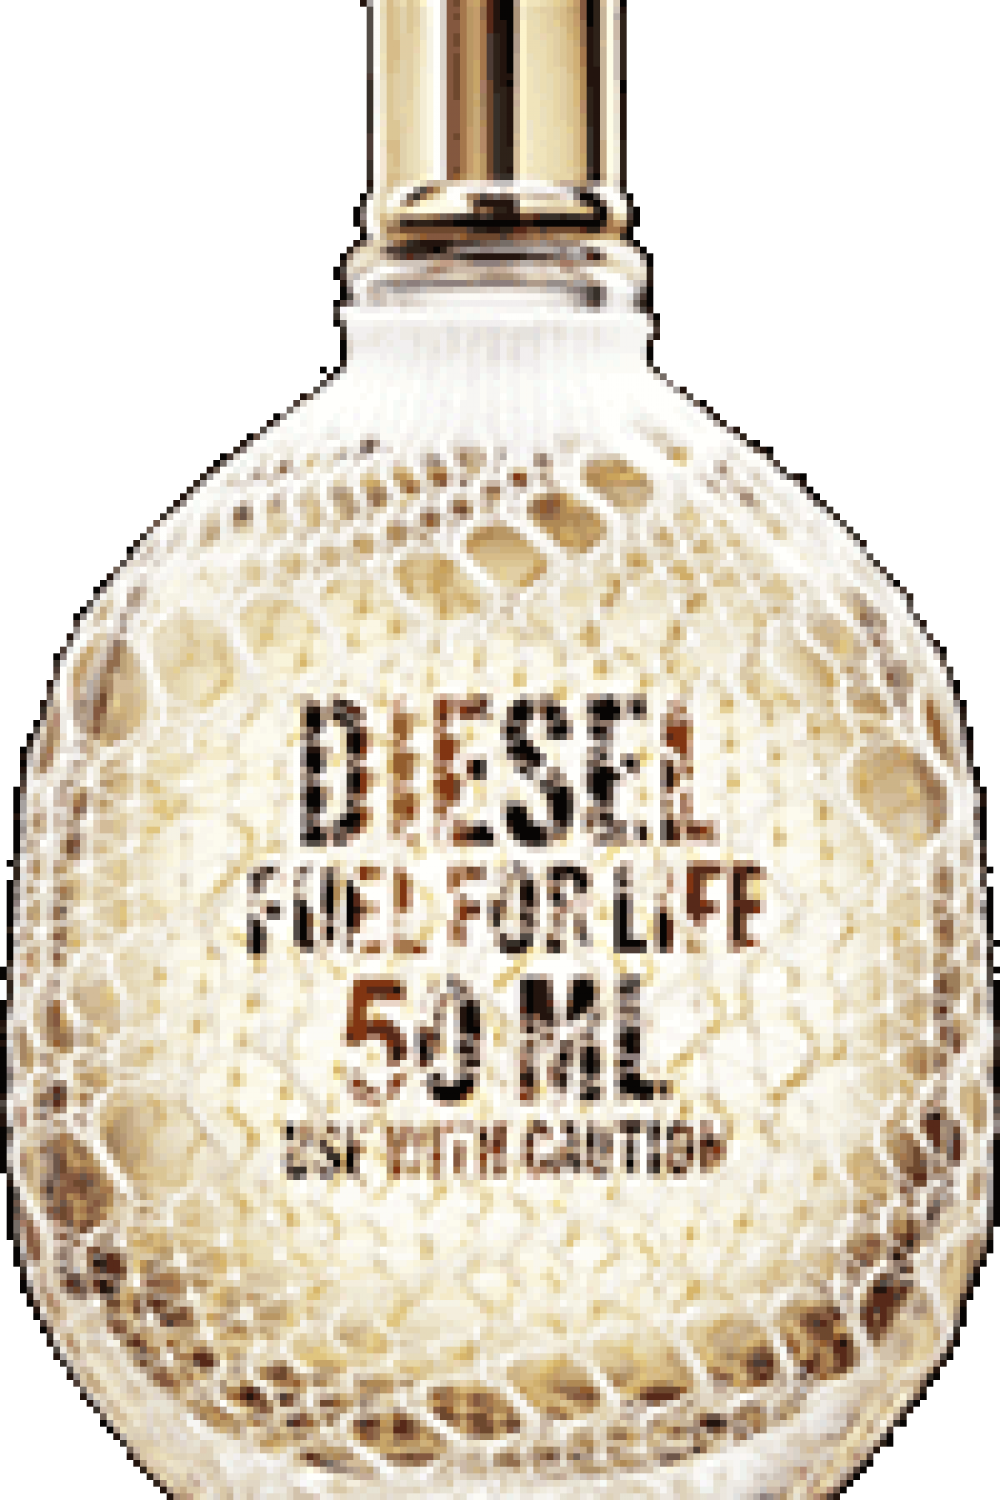 Diesel: Fuel for Life